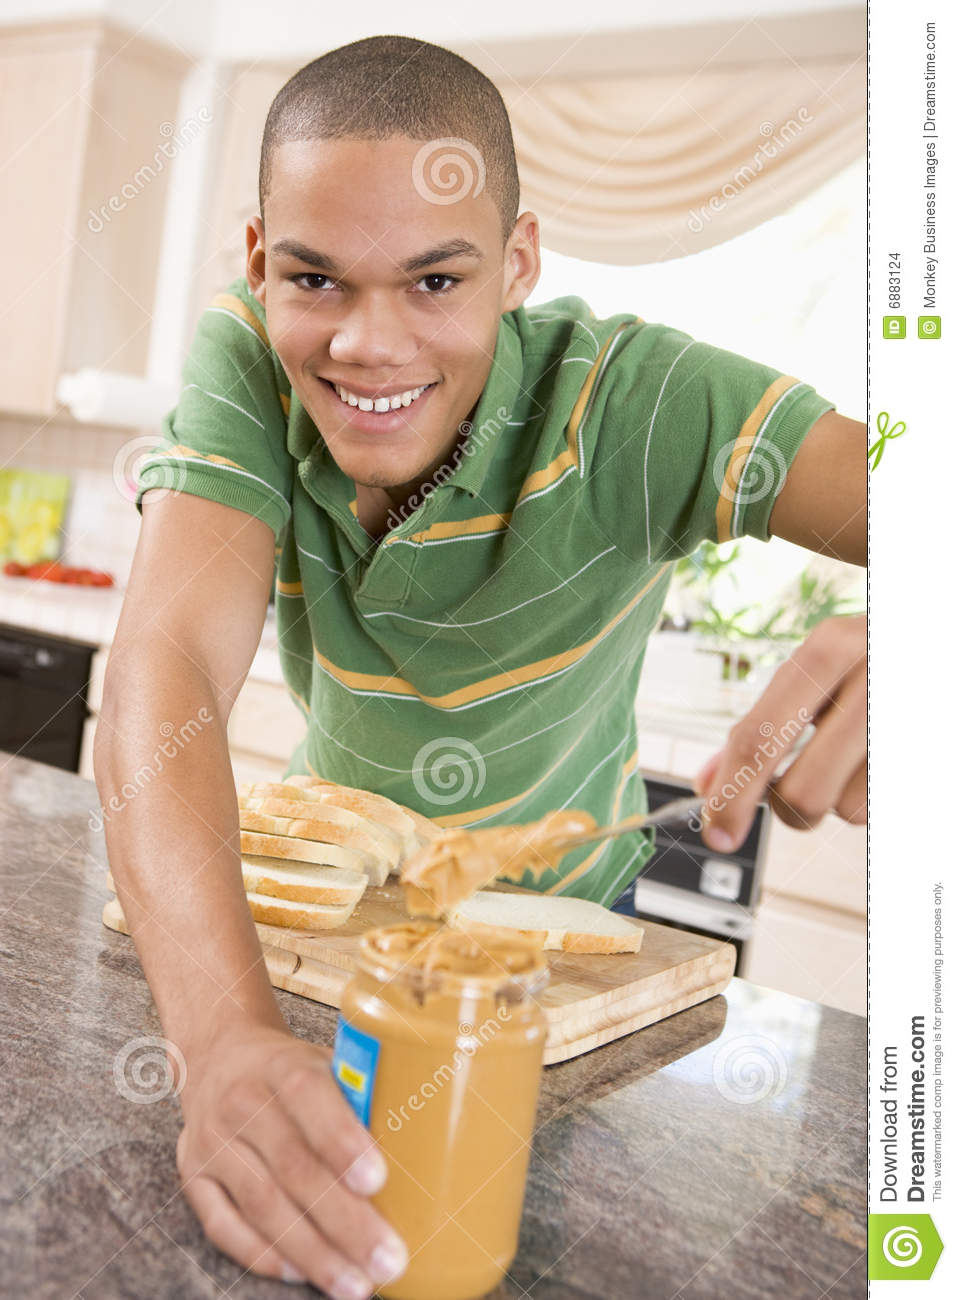 Teenage Male Making Peanut Butter Sandwich